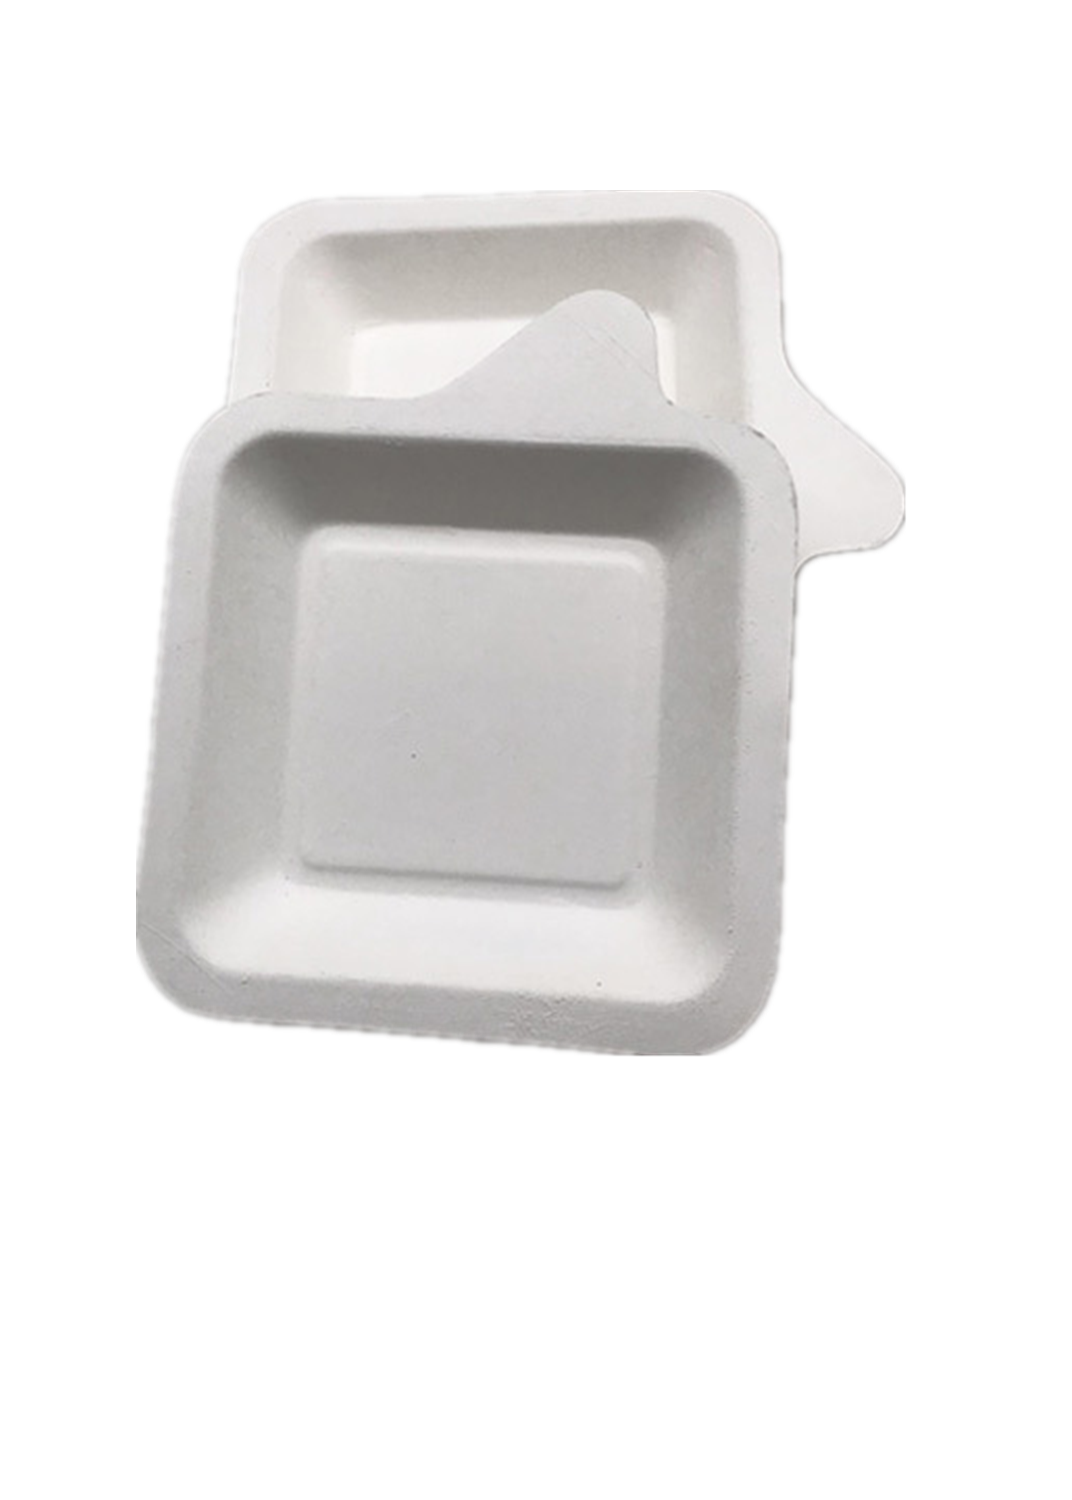 microwave equipment for biodegradable vegetable pulp food container